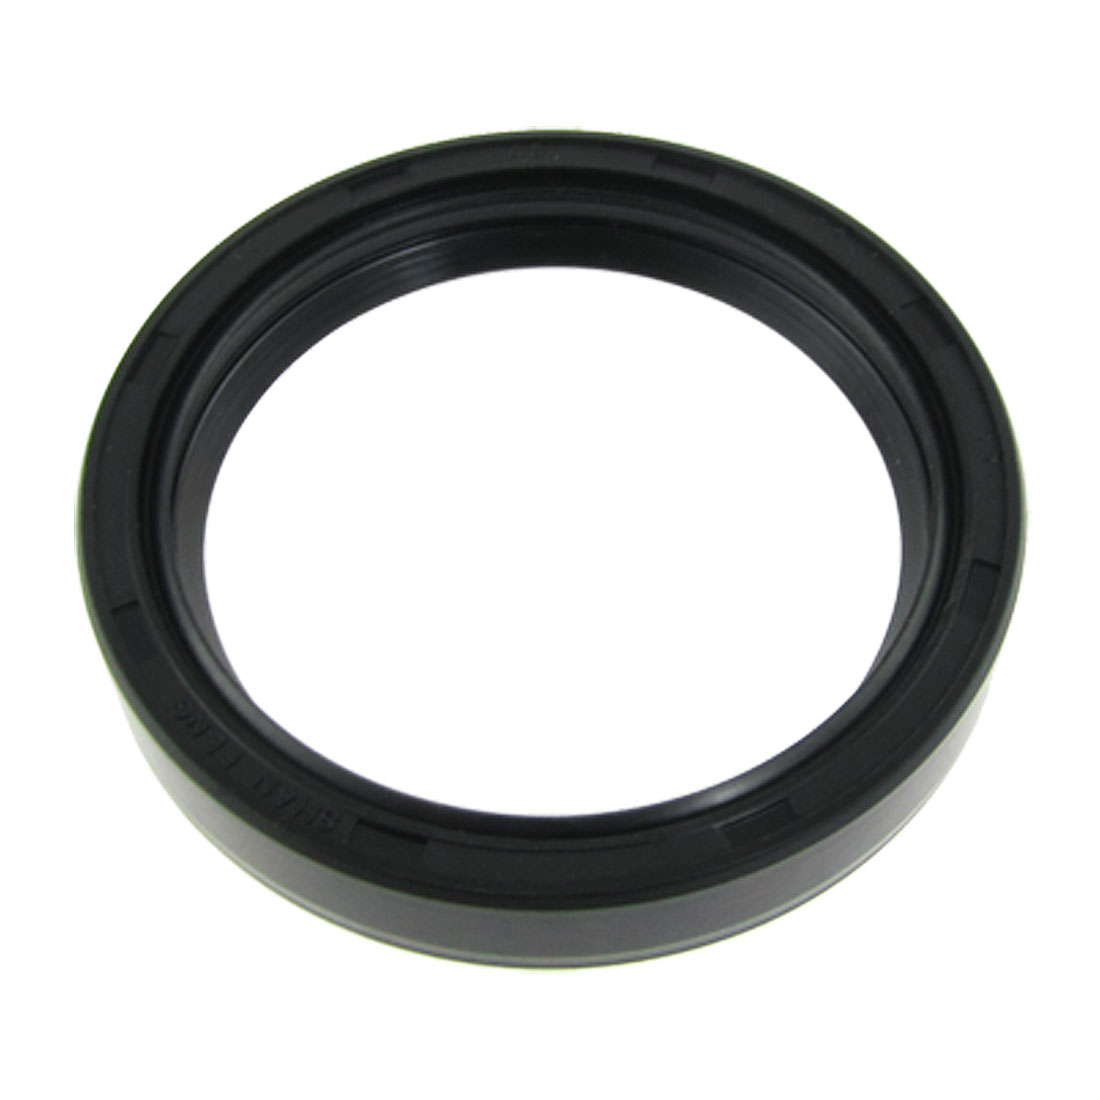 50mm x 62mm x 10mm Spring-loaded Double Lip TC Metric Oil Shaft Seal